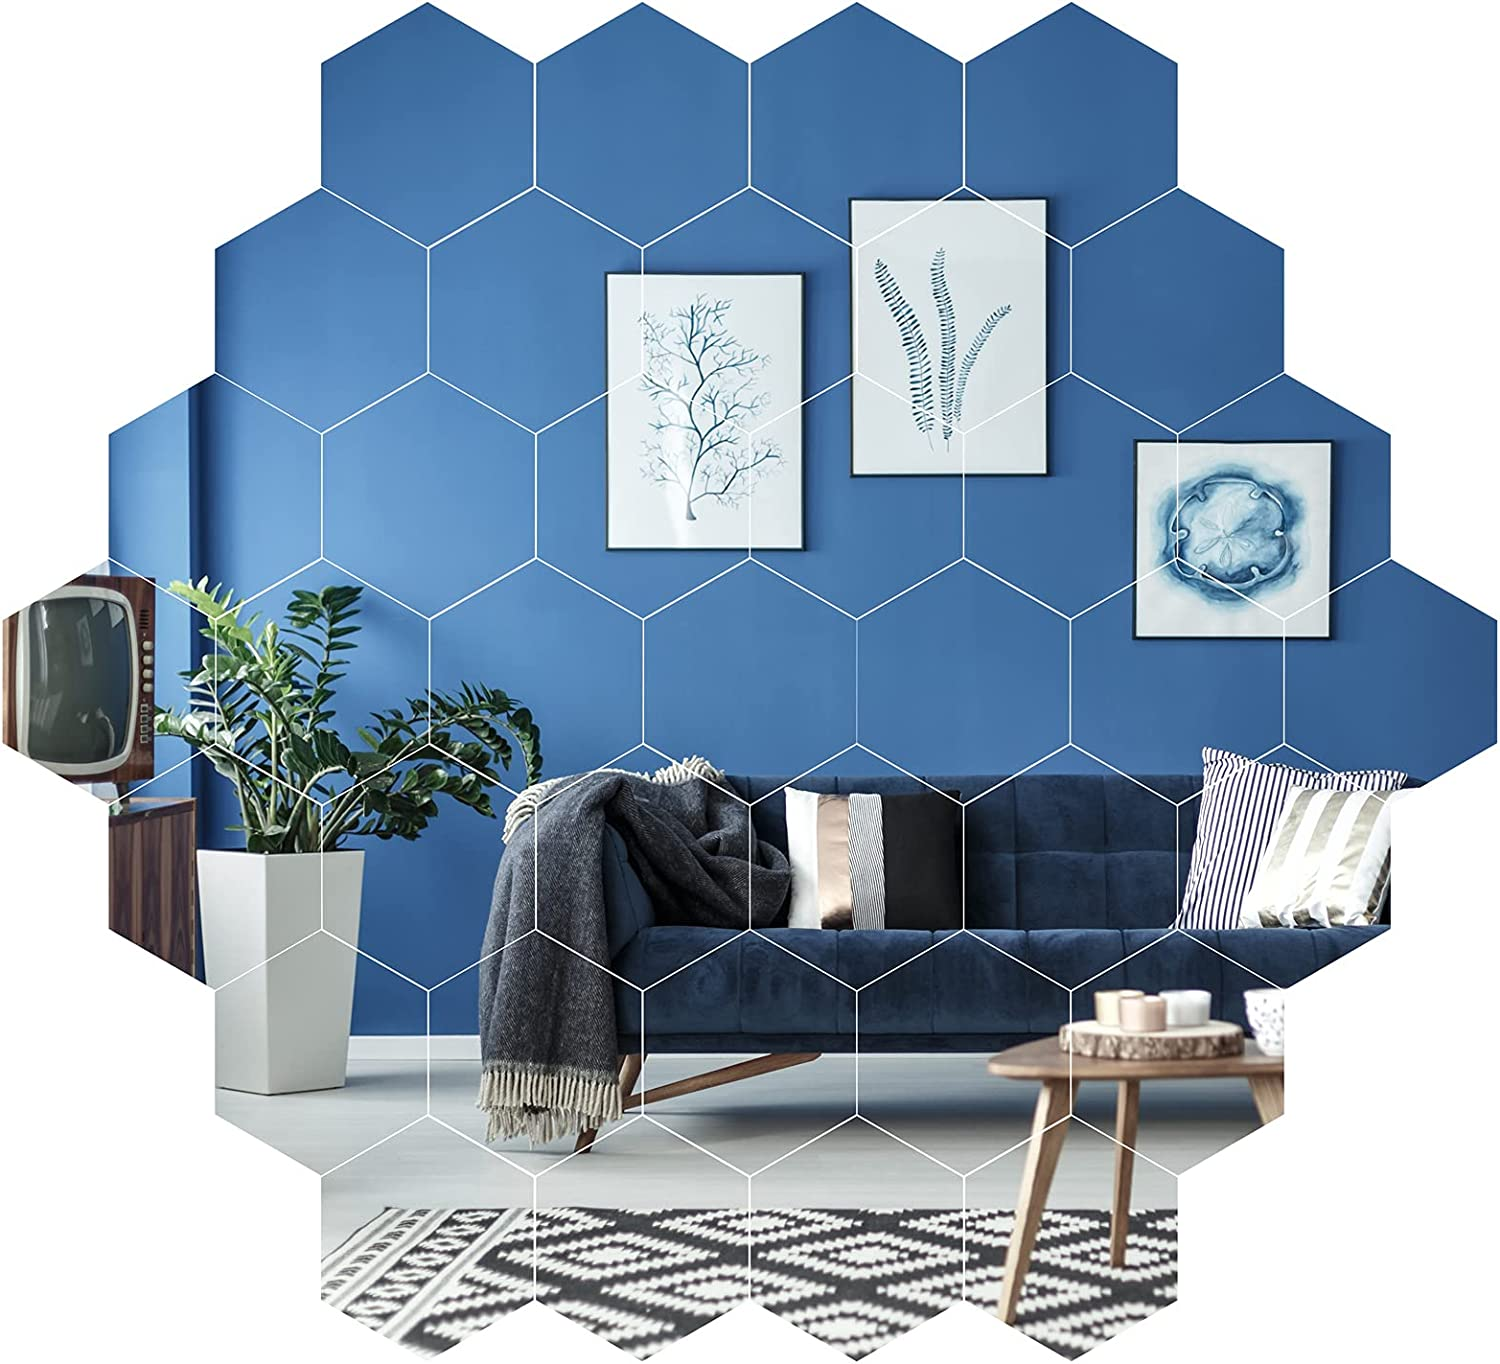 Aneco 36 Pieces Mirror Wall Stickers Removable Acrylic Mirror Self Adhesive Hexagon Wall Sticker DIY Mirror Wall Decal for Home Living Room Bedroom Decor, Silver